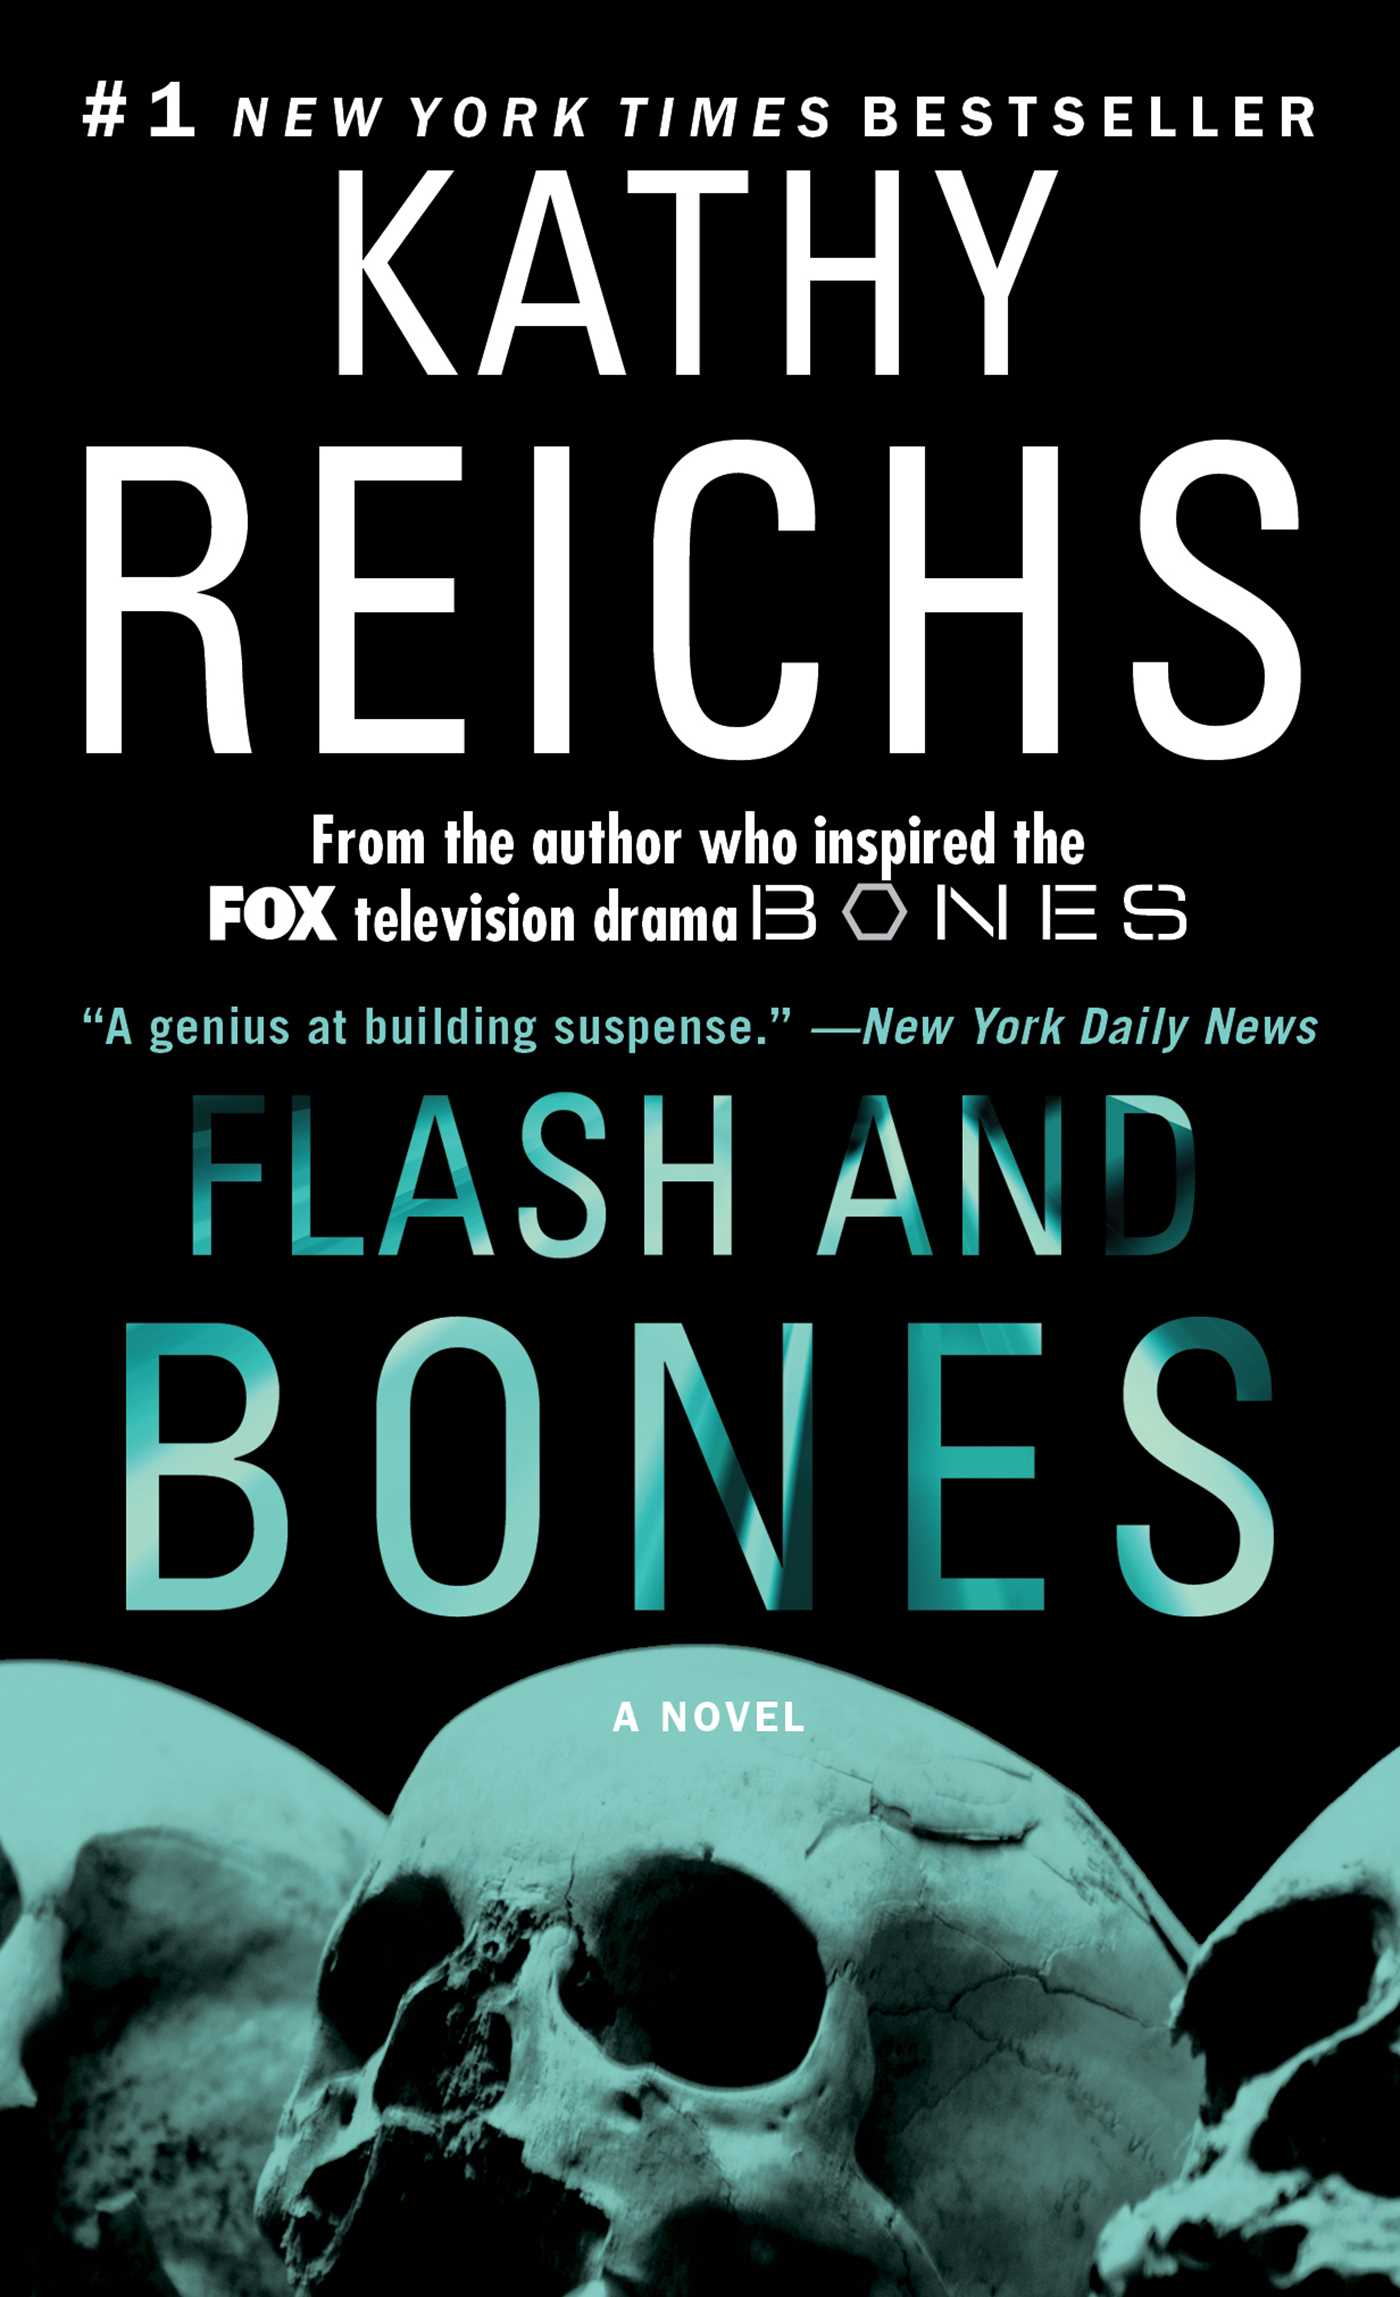 Flash and bones 9781439112809 hr